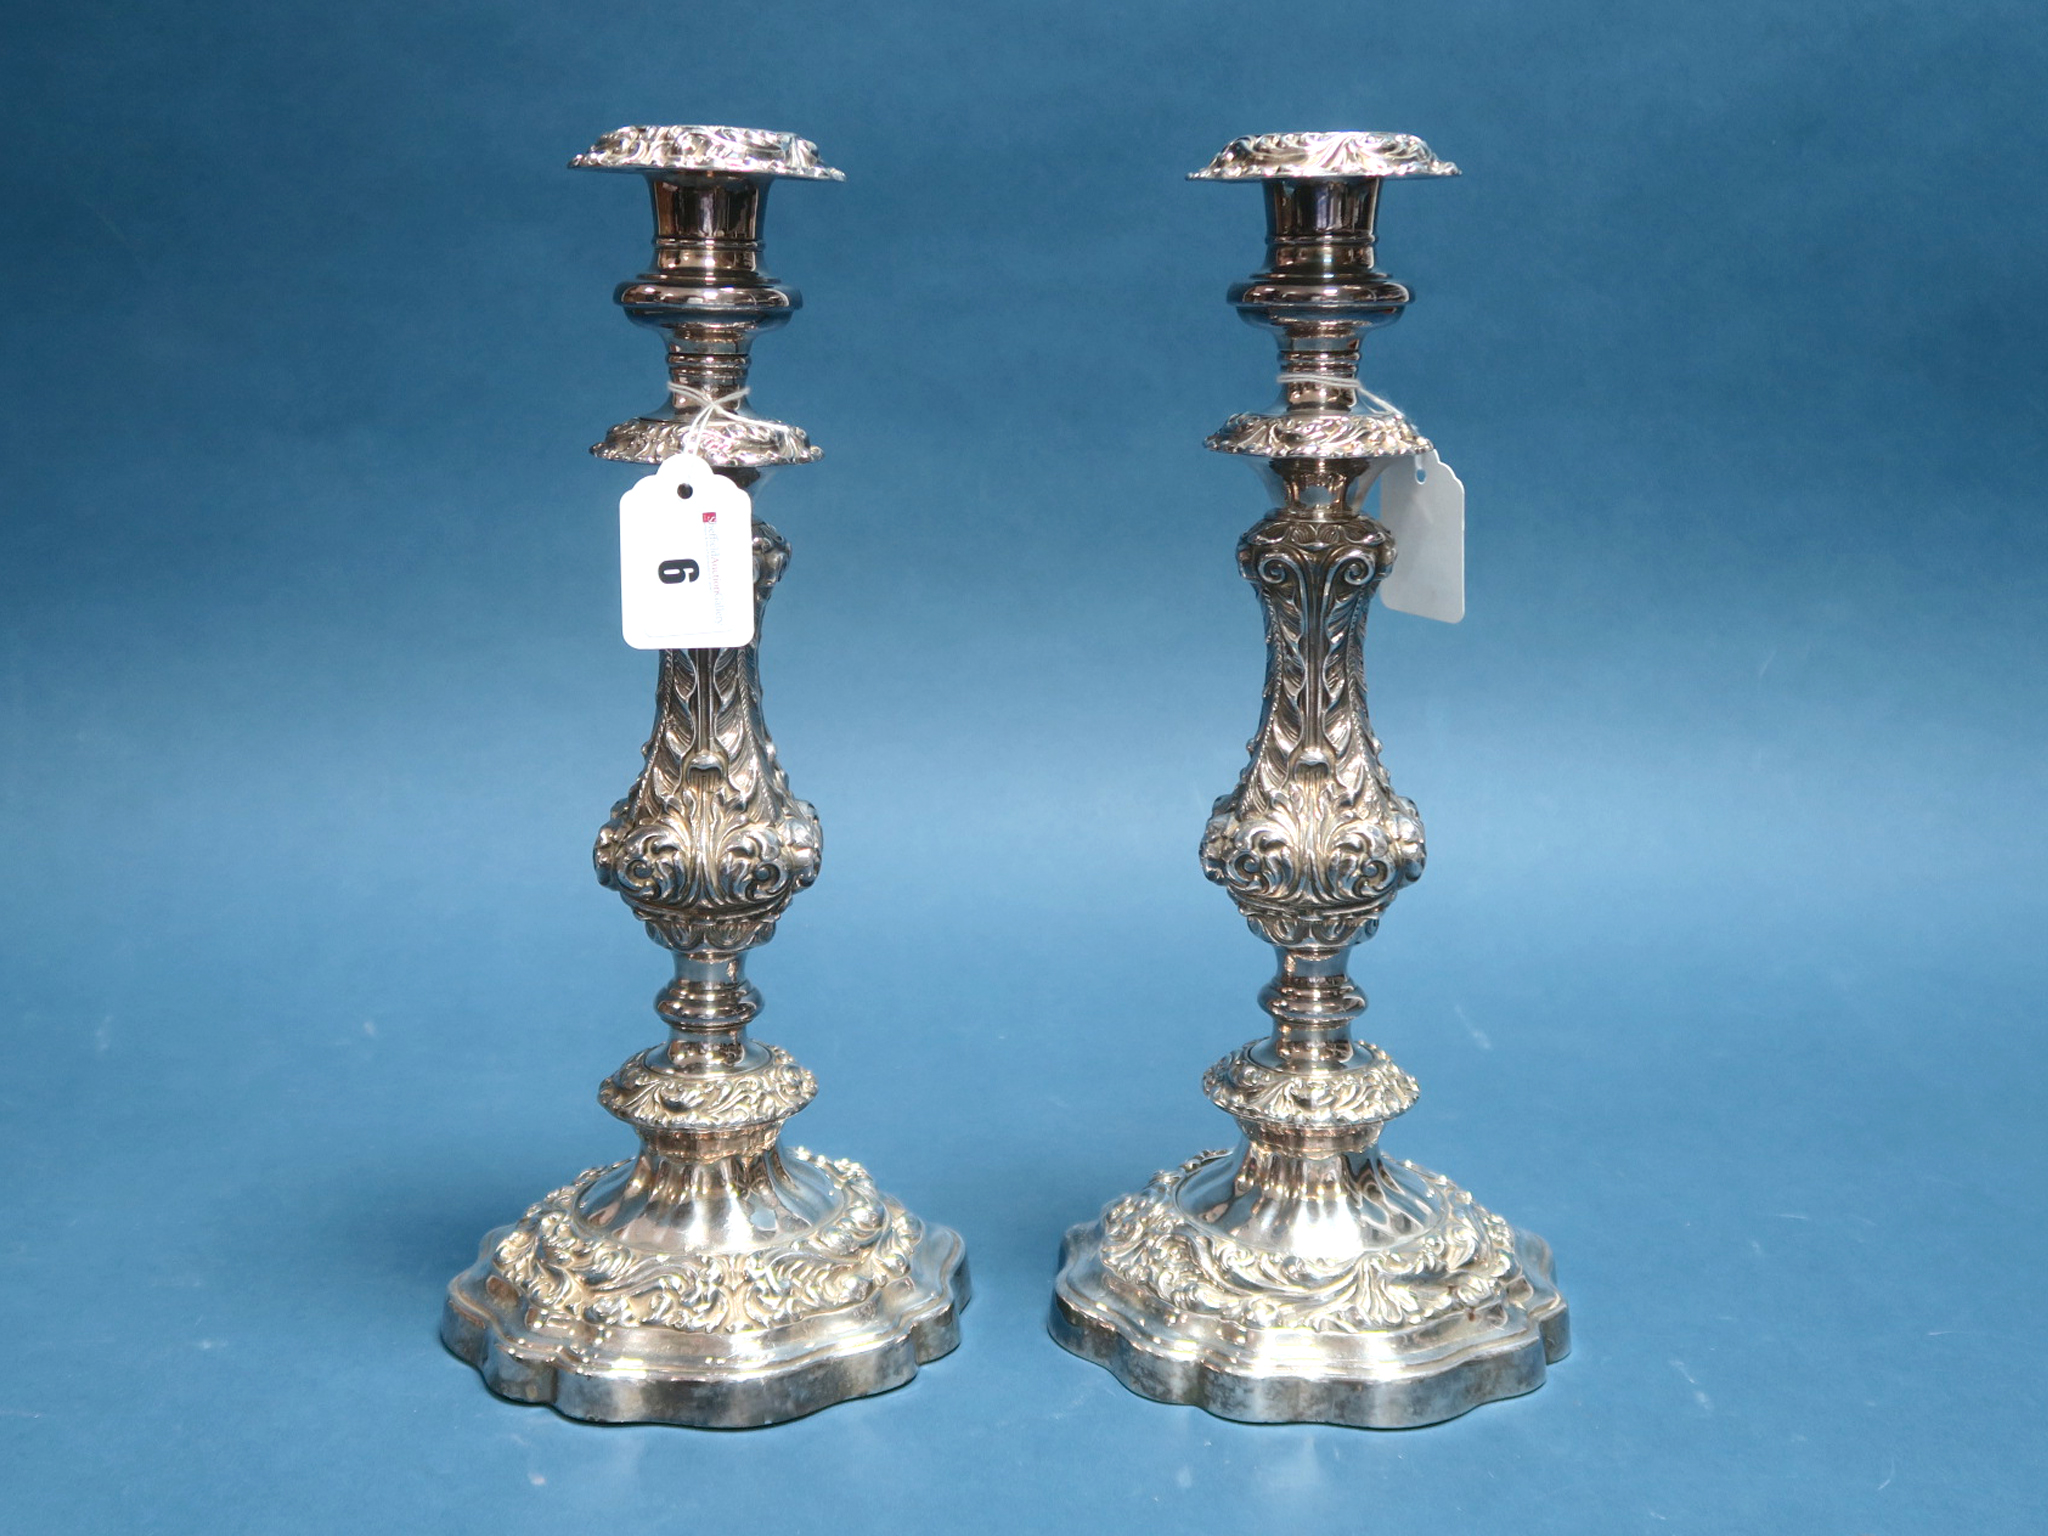 Lot 6 - A Highly Decorative Pair of Plated Candlesticks, each shaped circular base supporting square